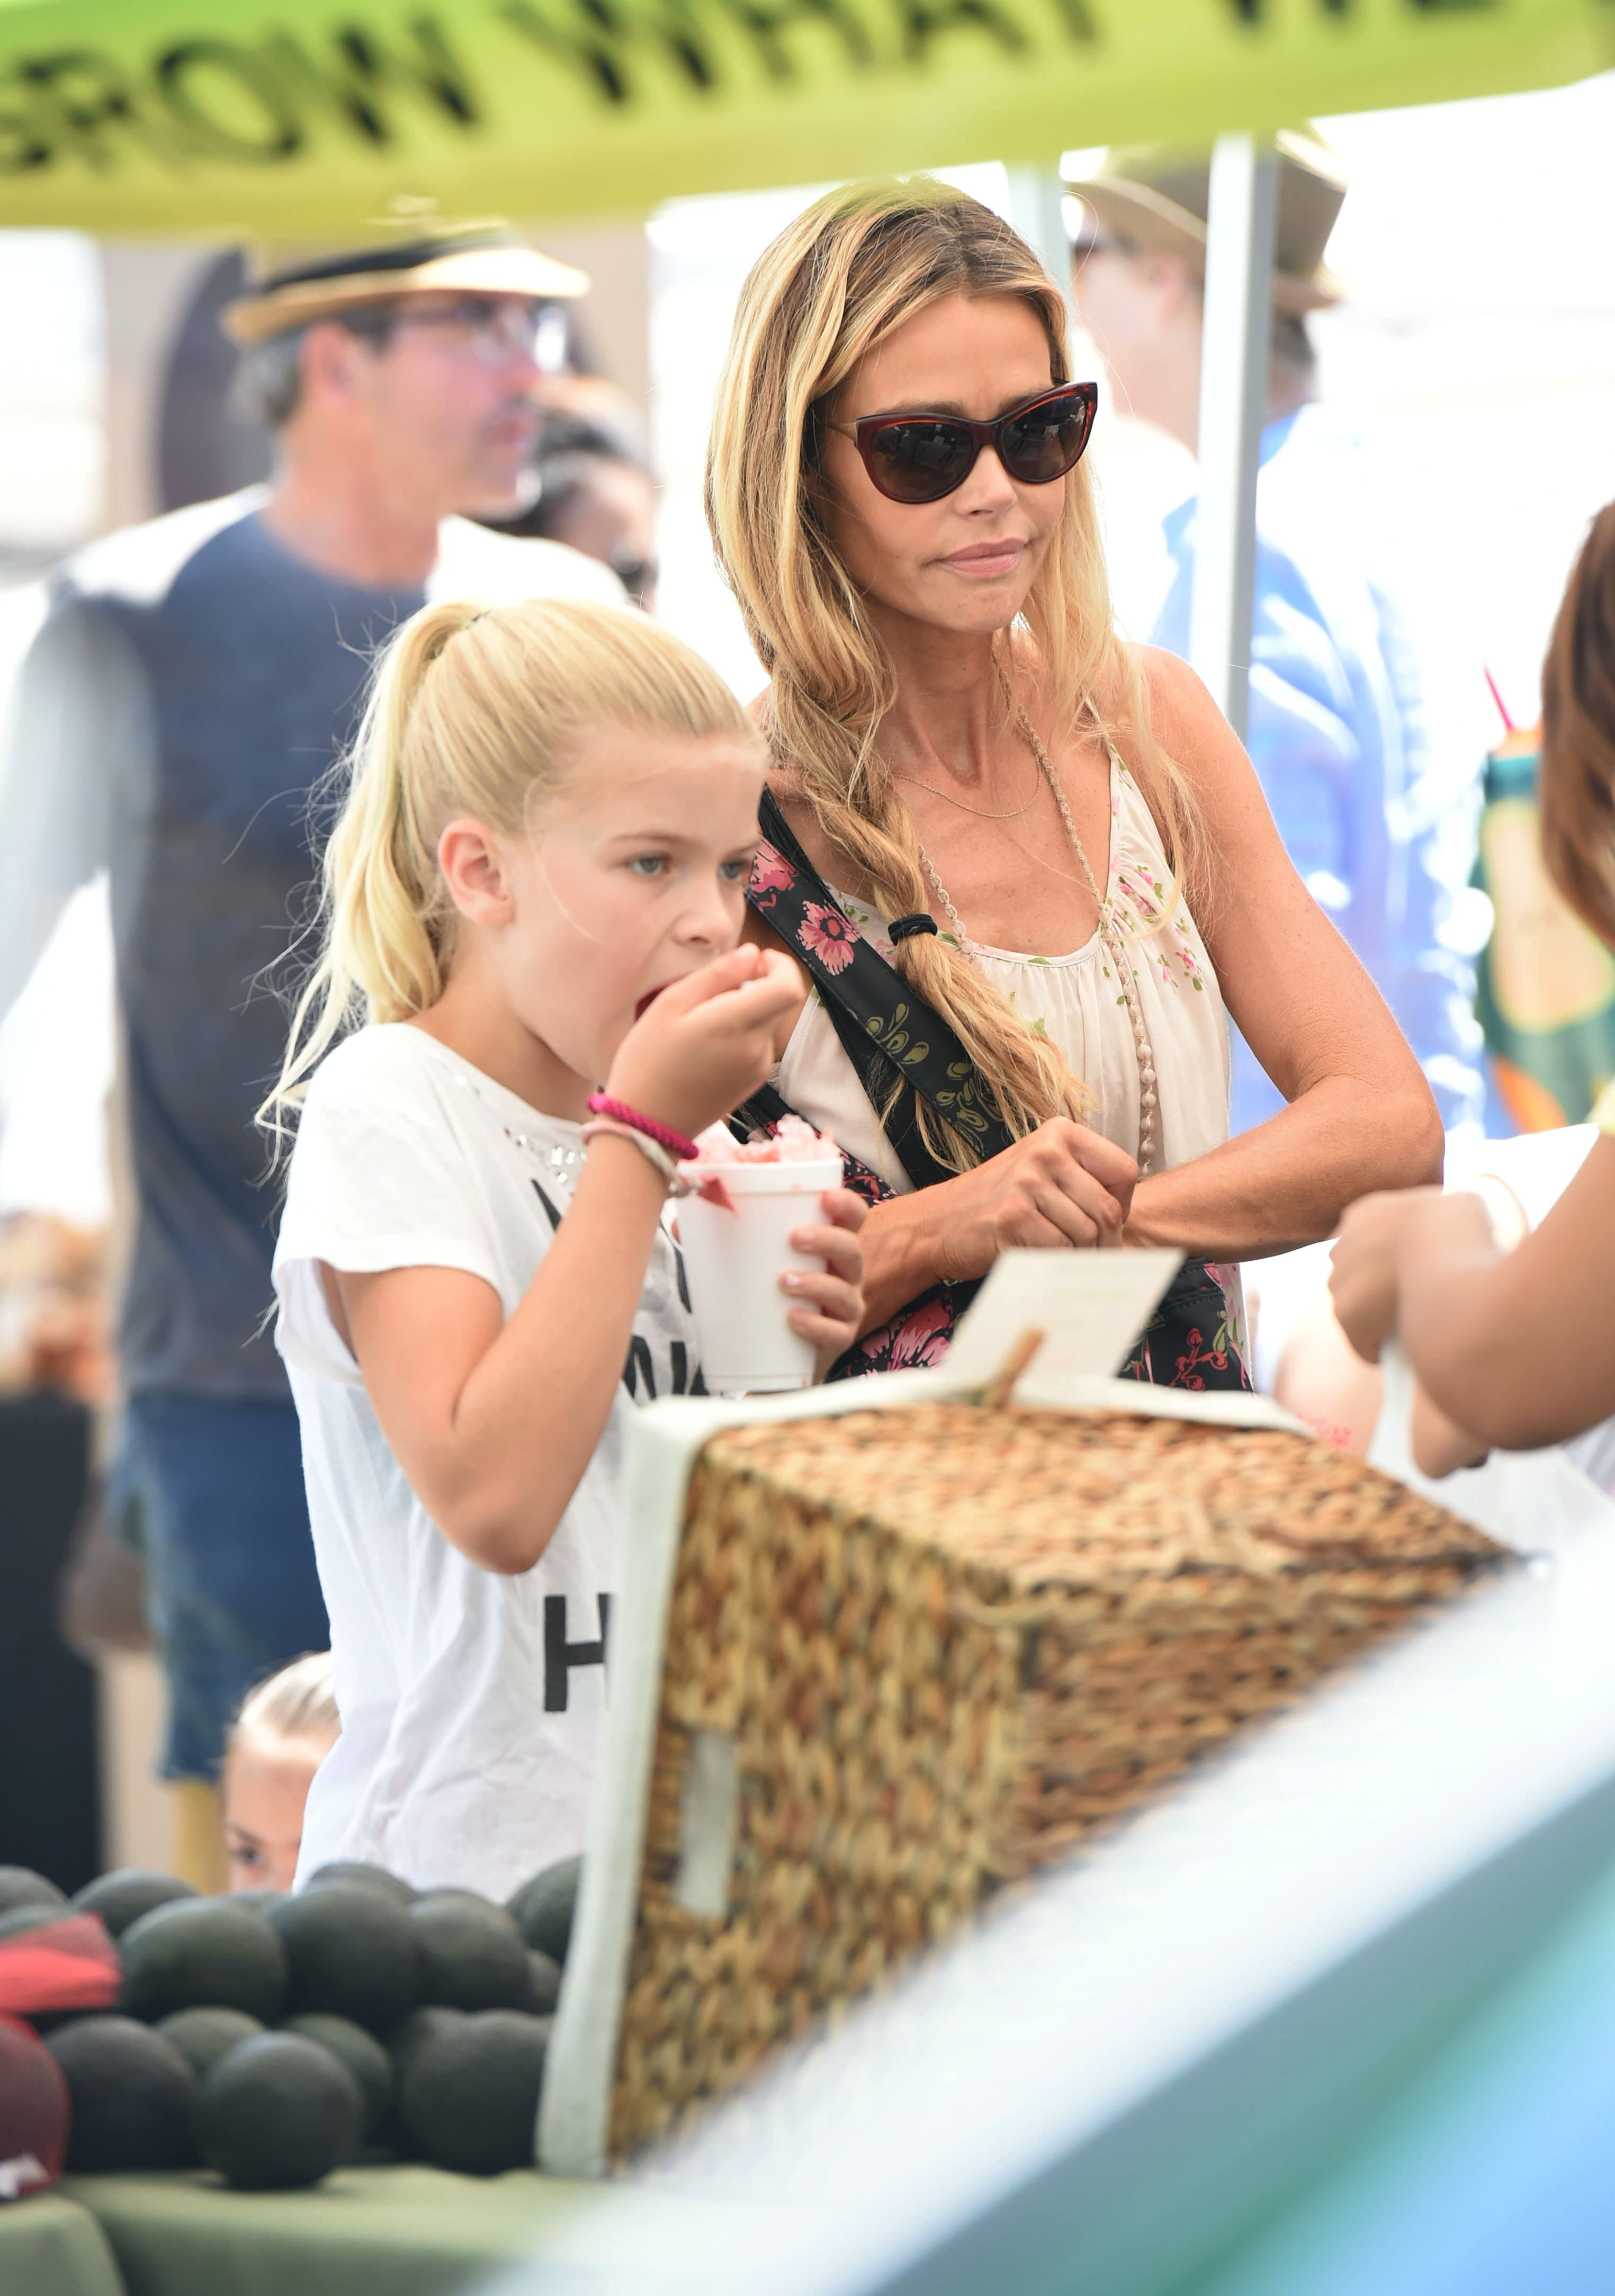 In 2011, after her divorce from Charlie Sheen, the mother of two, Denise Richards, adopted her daughter Eloise as a single mother. (Photo: WENN)